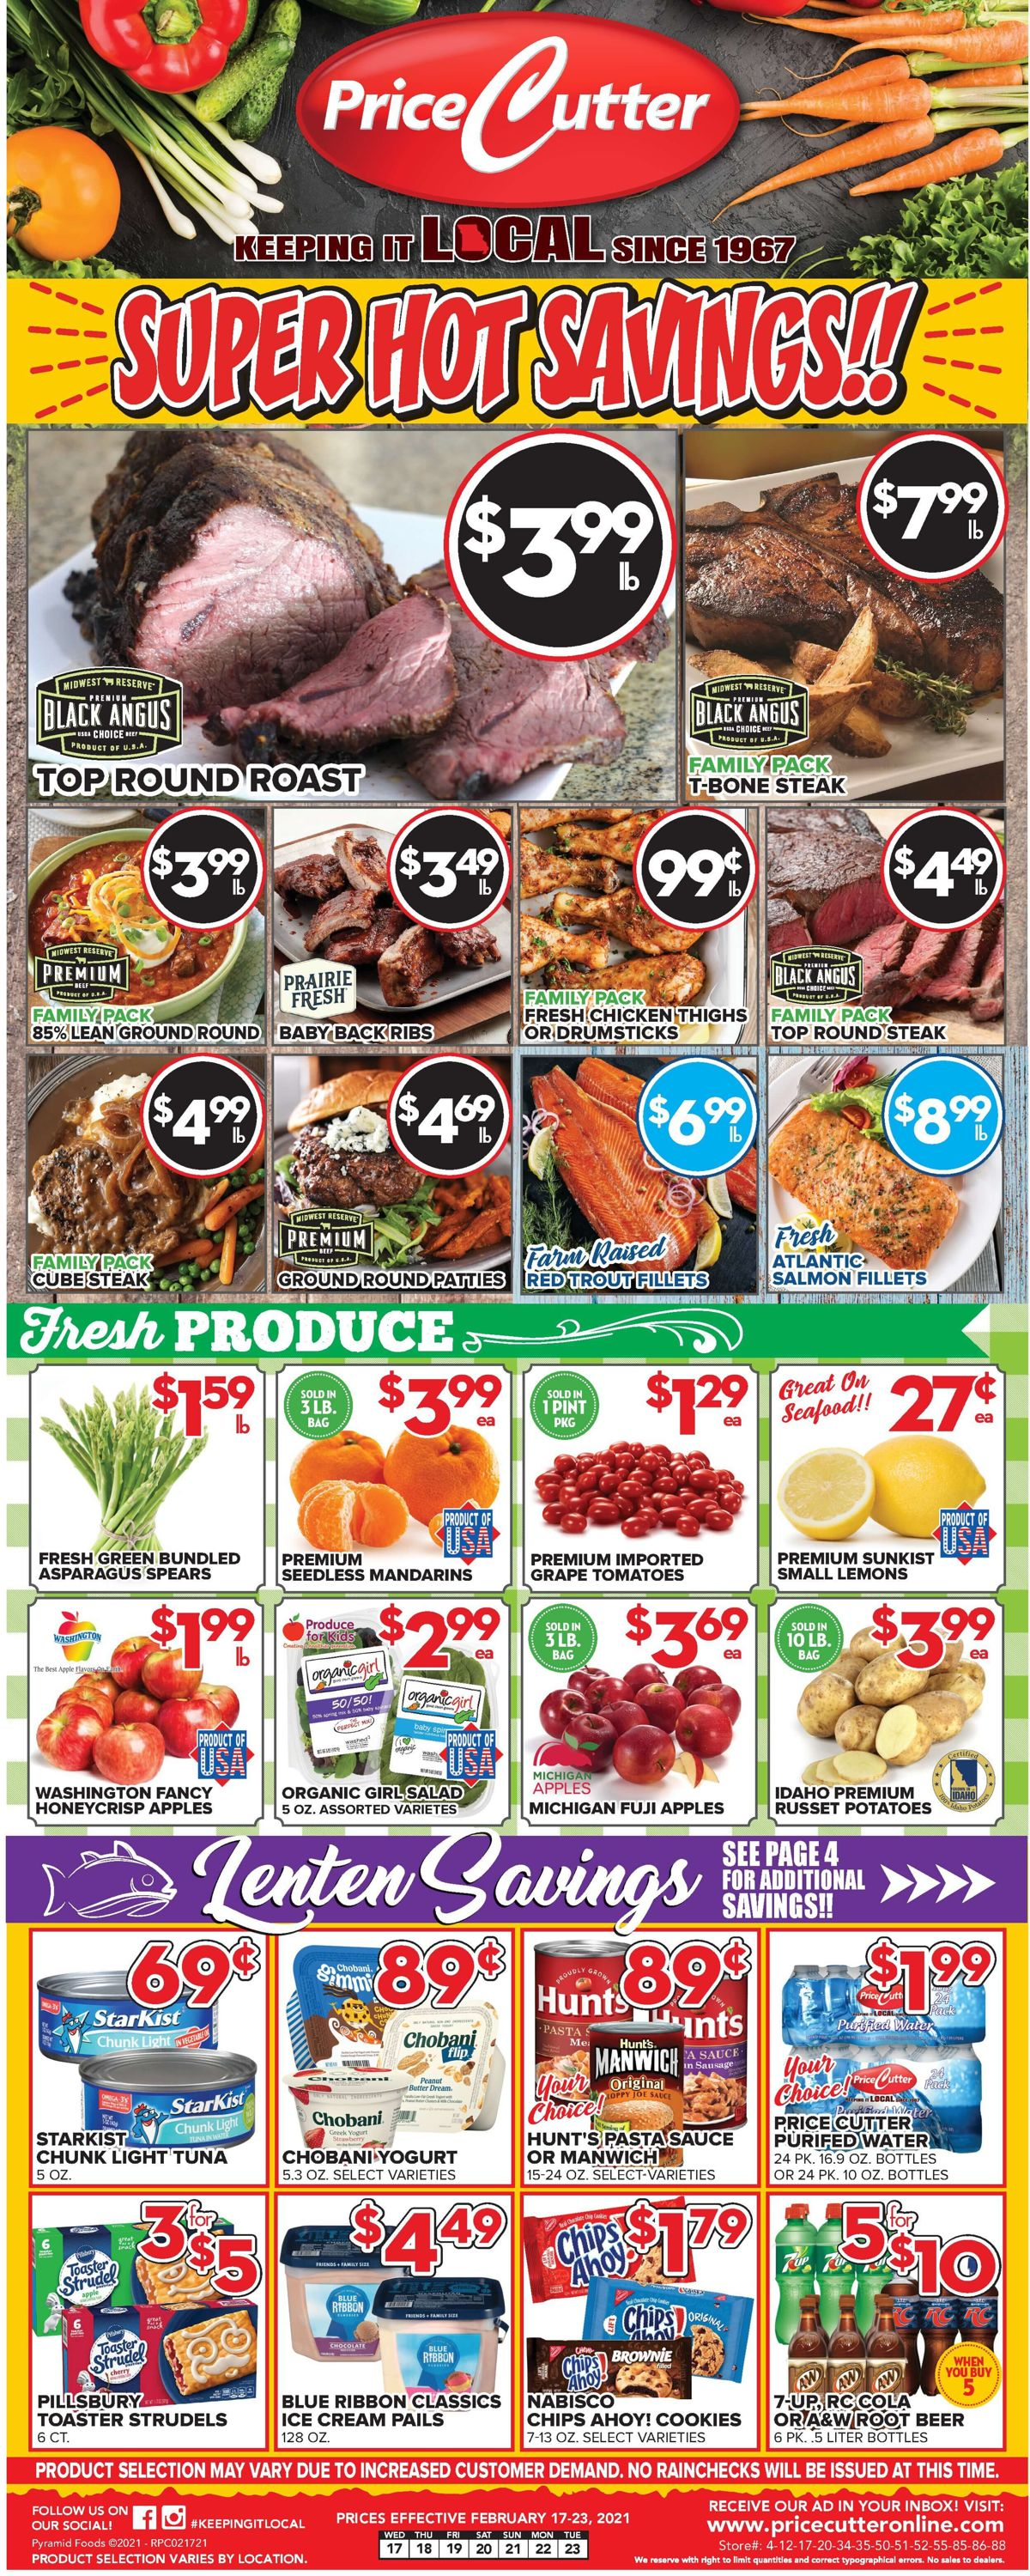 Price Cutter Weekly Ad Circular - valid 02/17-02/23/2021